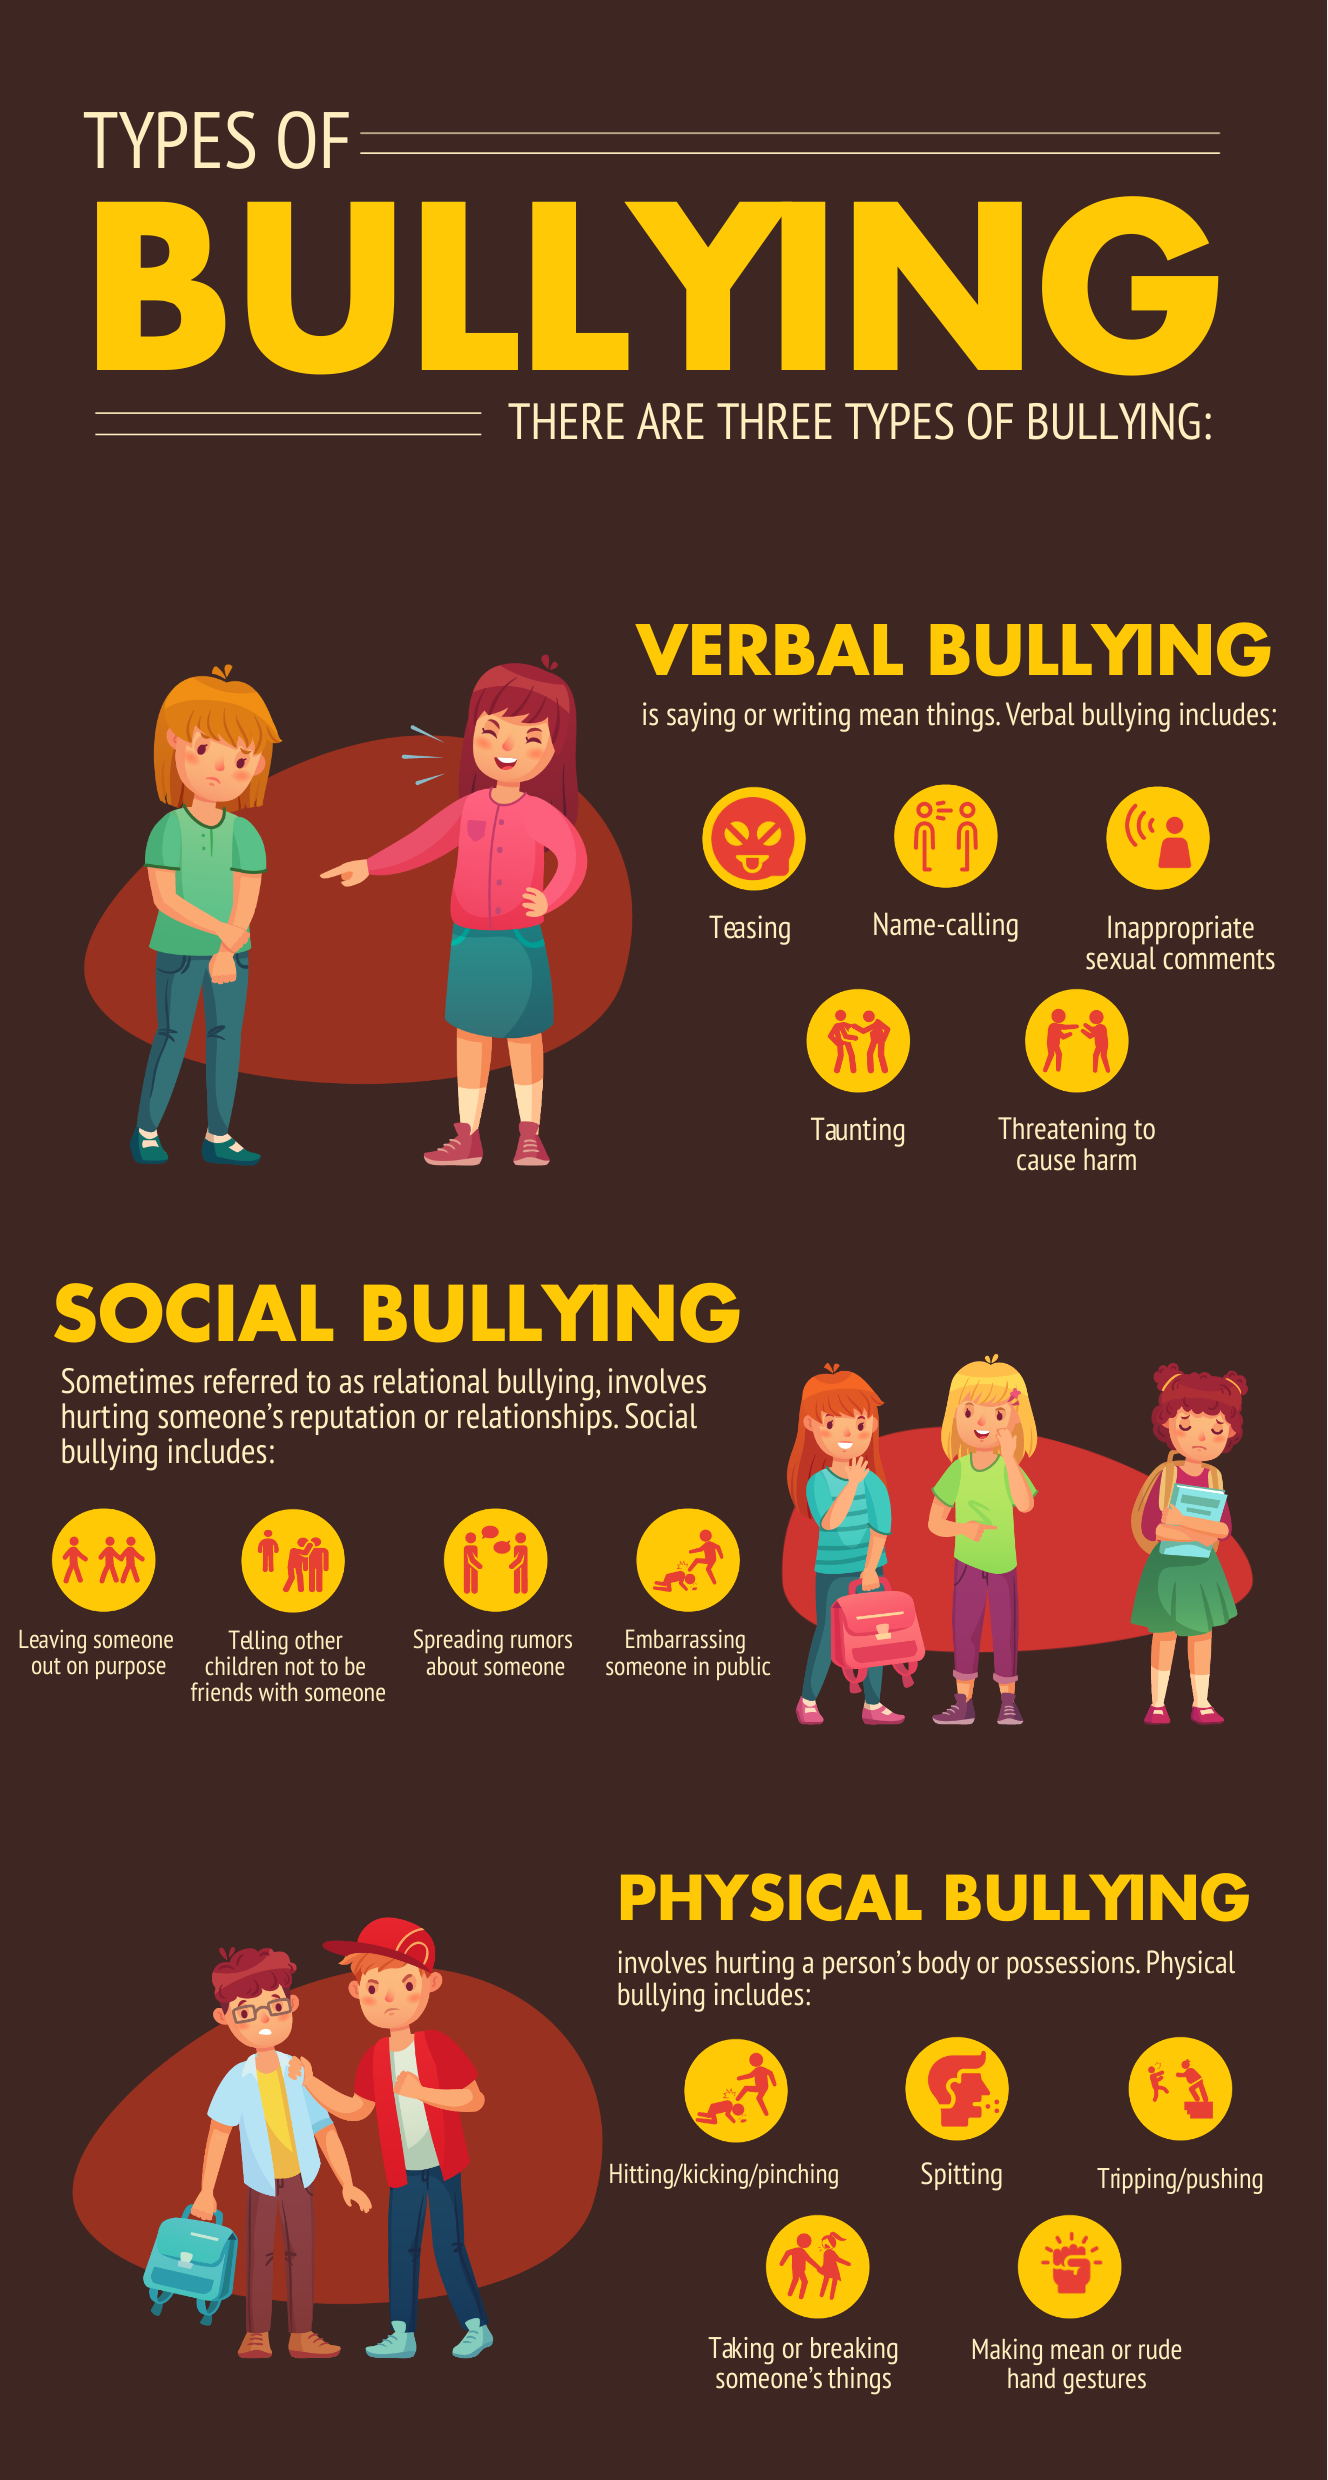 An infographic about the different types of bullying